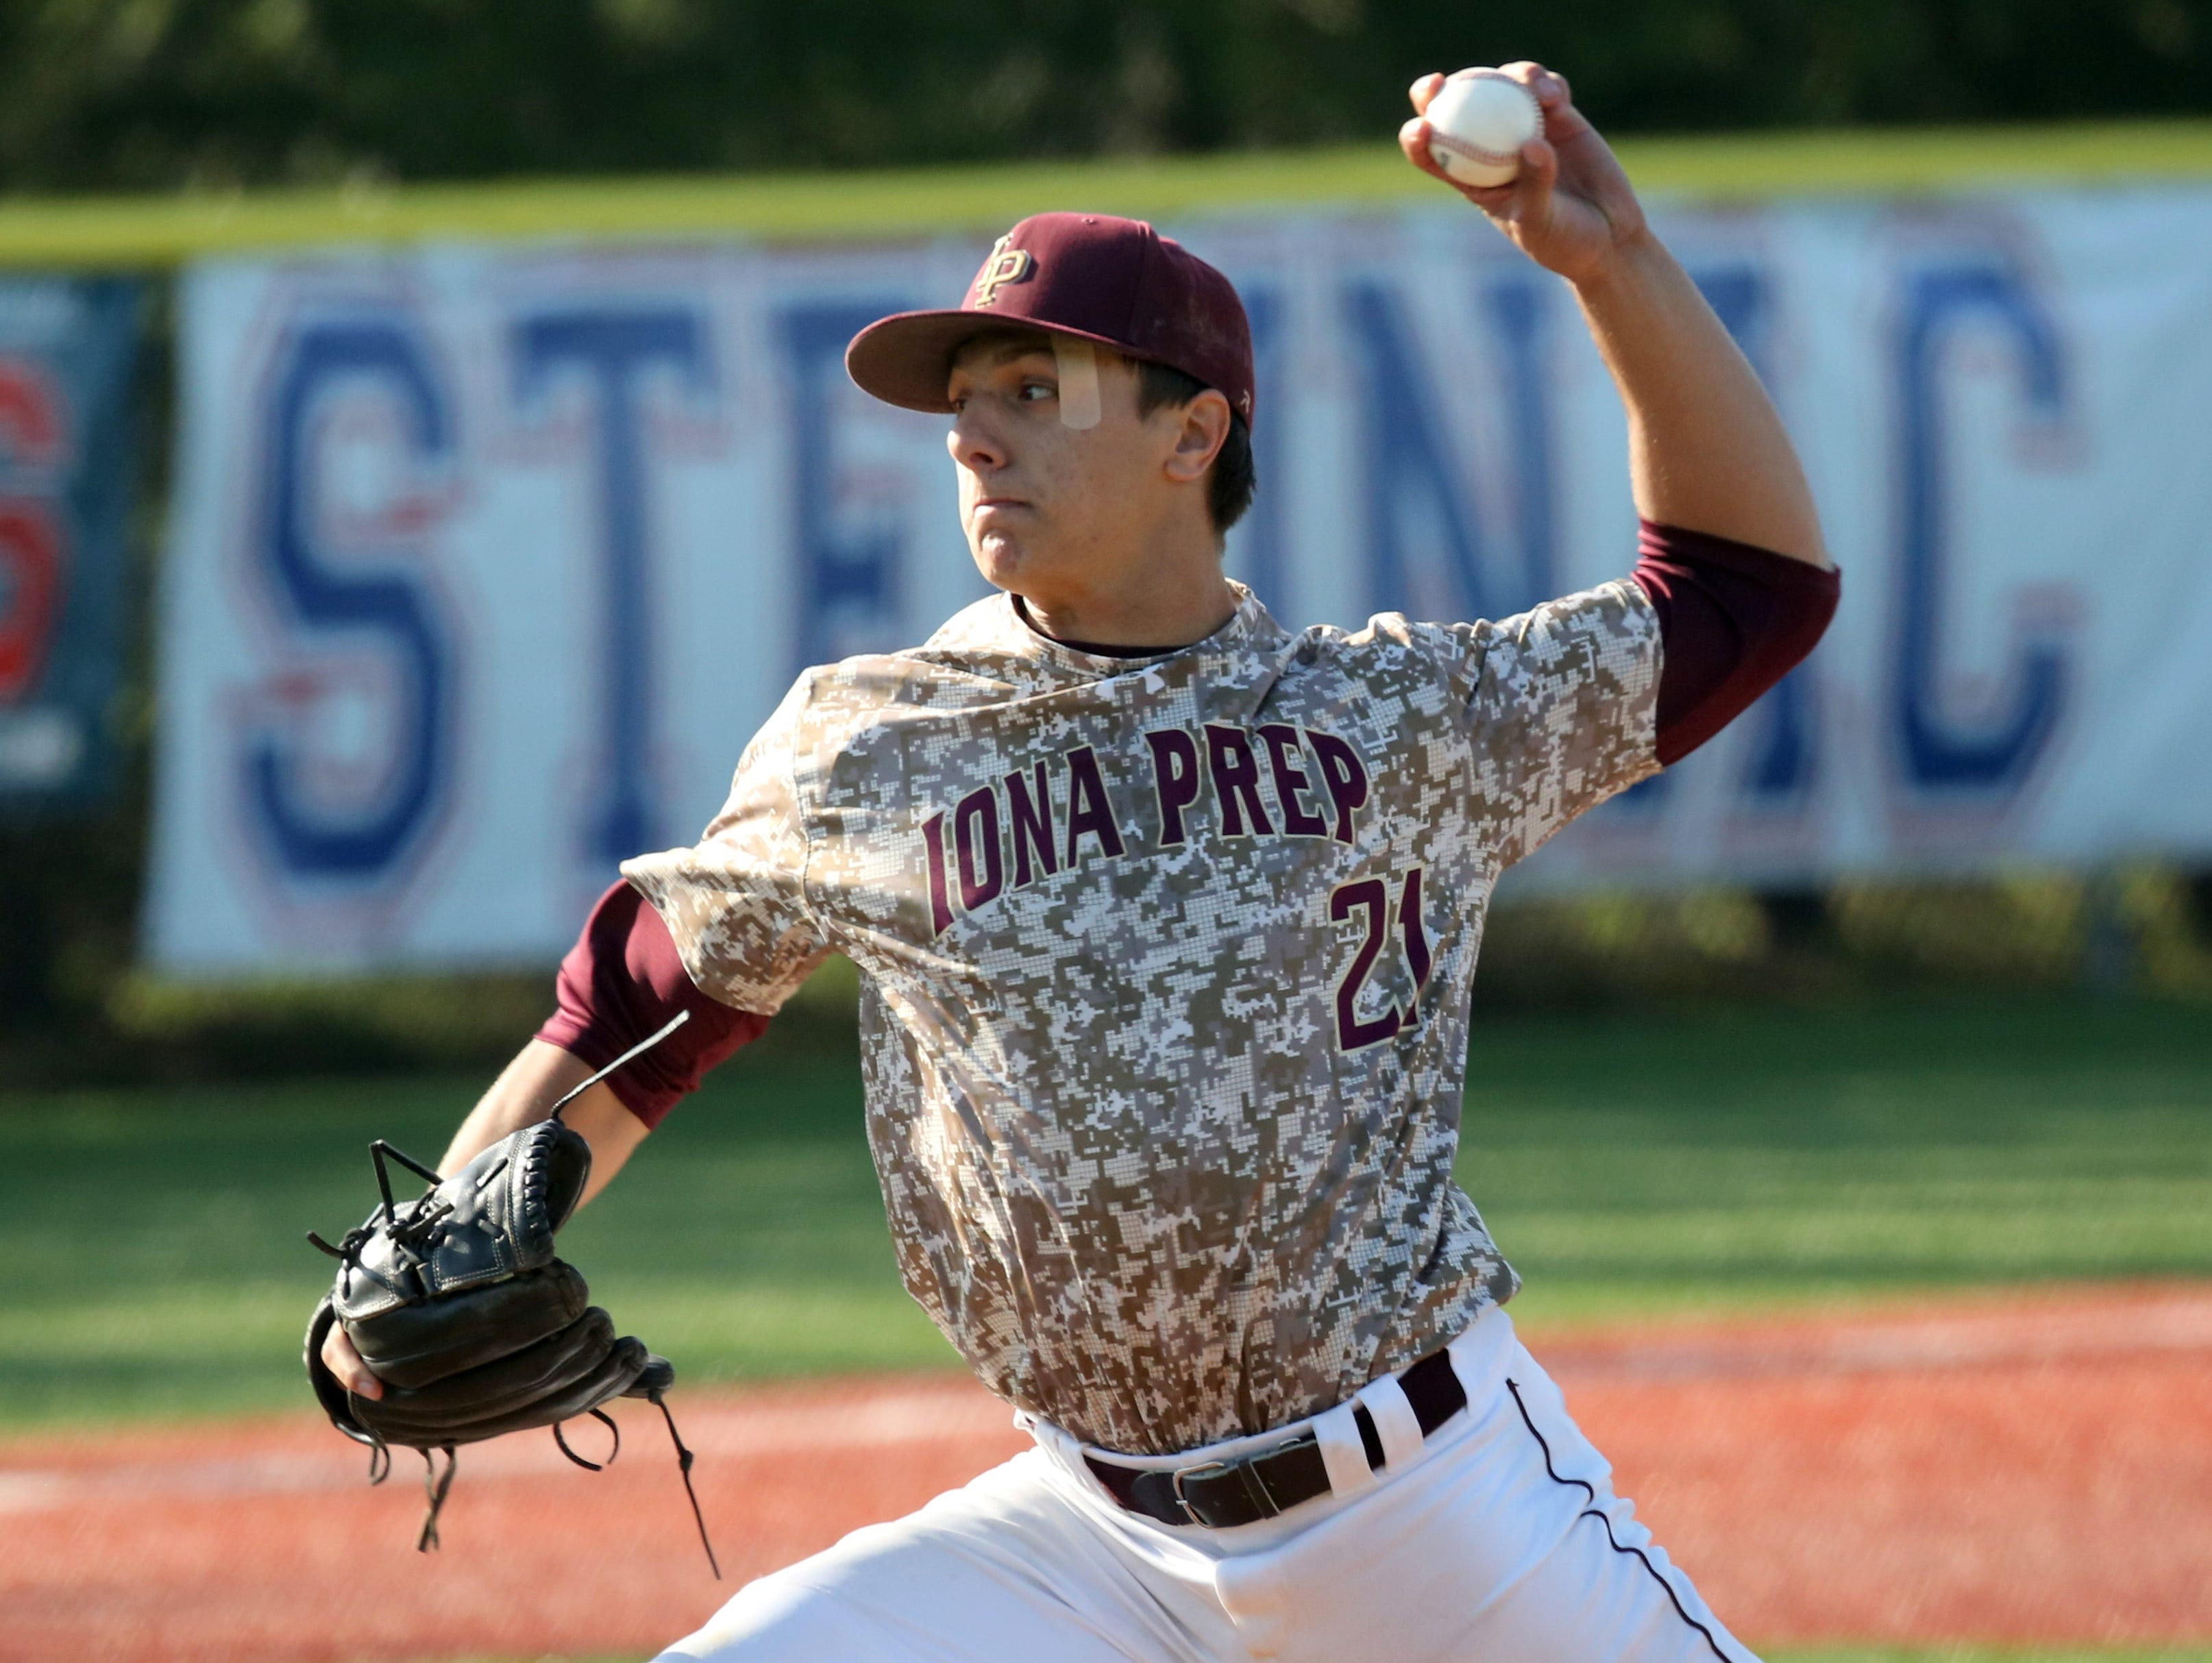 Iona Prep pitcher Anthony Piccolino delivers a pitch against Archbishop Stepinac during their baseball game at Stepinac in White Plains, April 27, 2016.